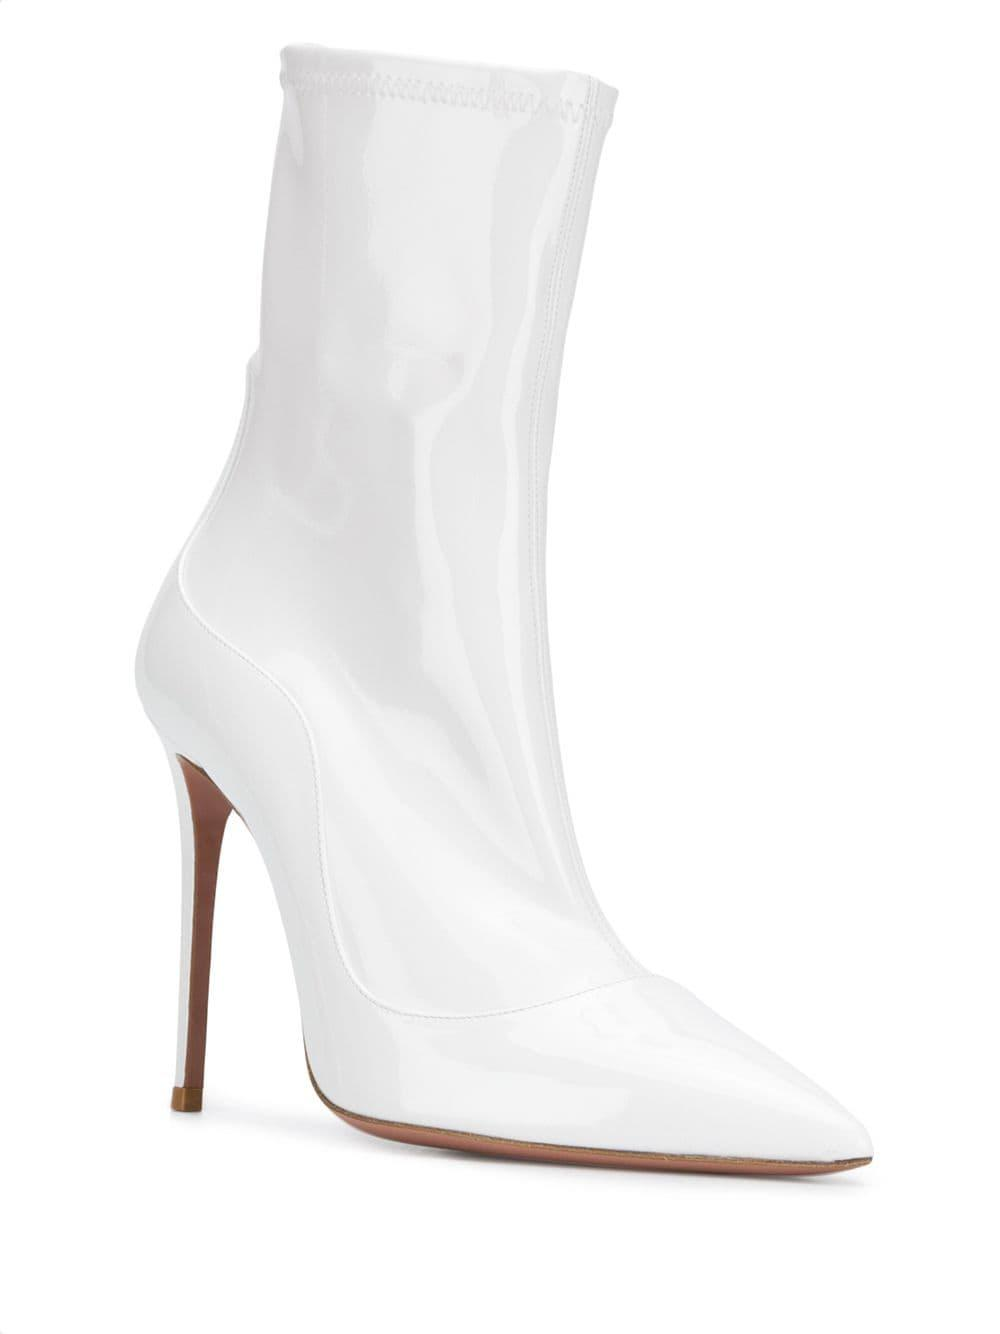 0a9060a3c3f Lyst - Aquazzura Varmished Pointed-toe Boots in White - Save 24%